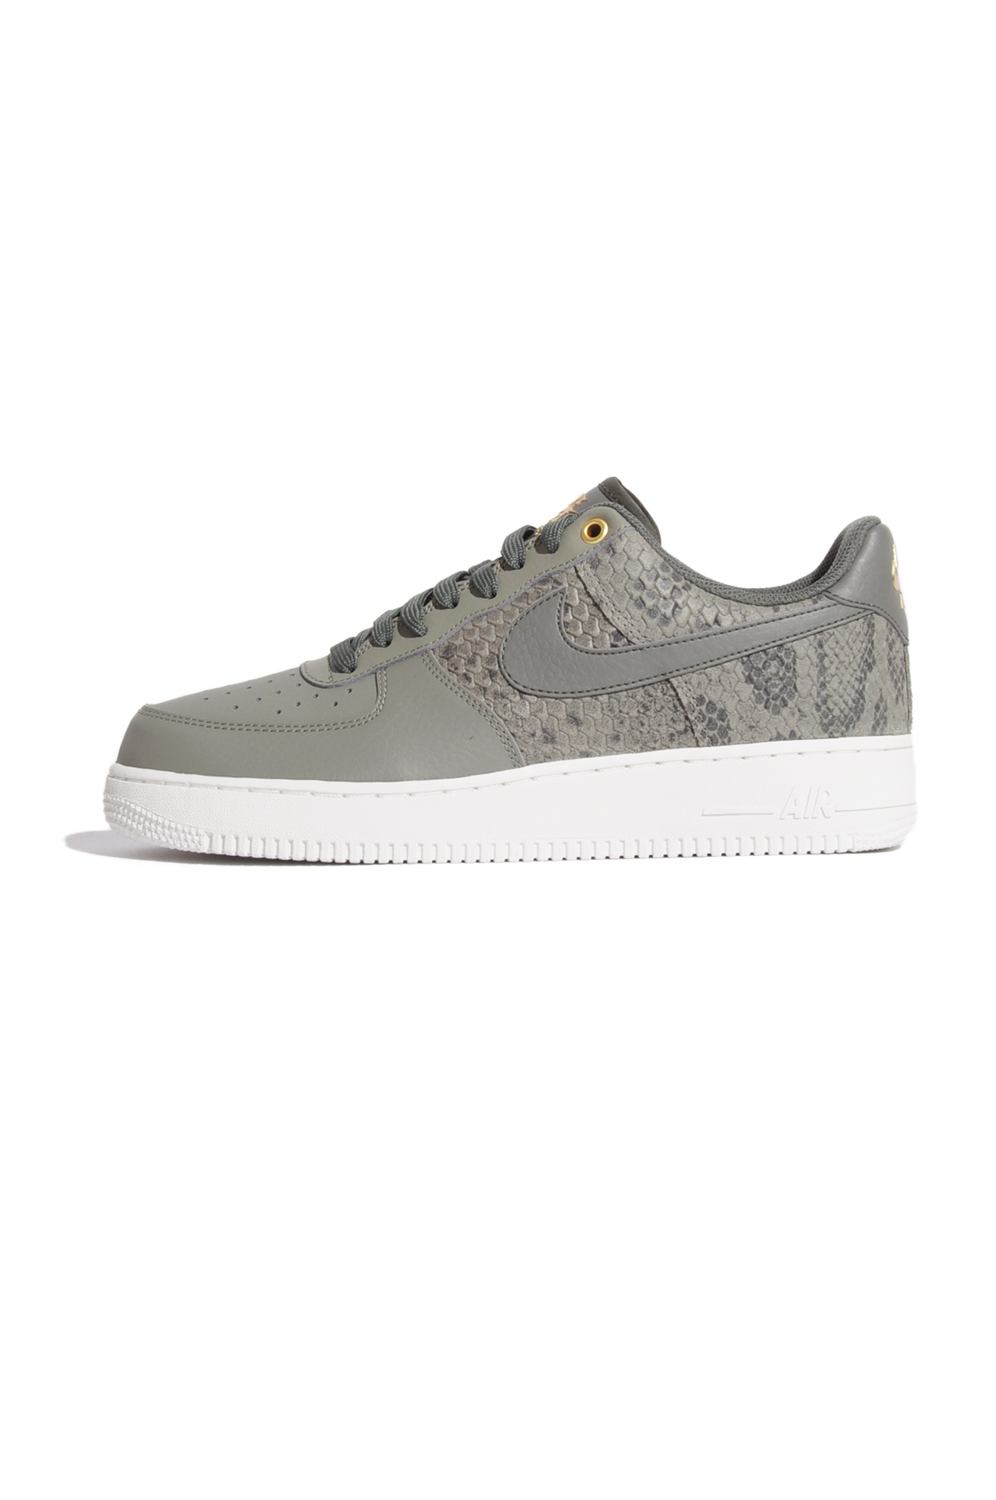 画像2: 【NIKE】AIR FORCE 1 '07 LV8